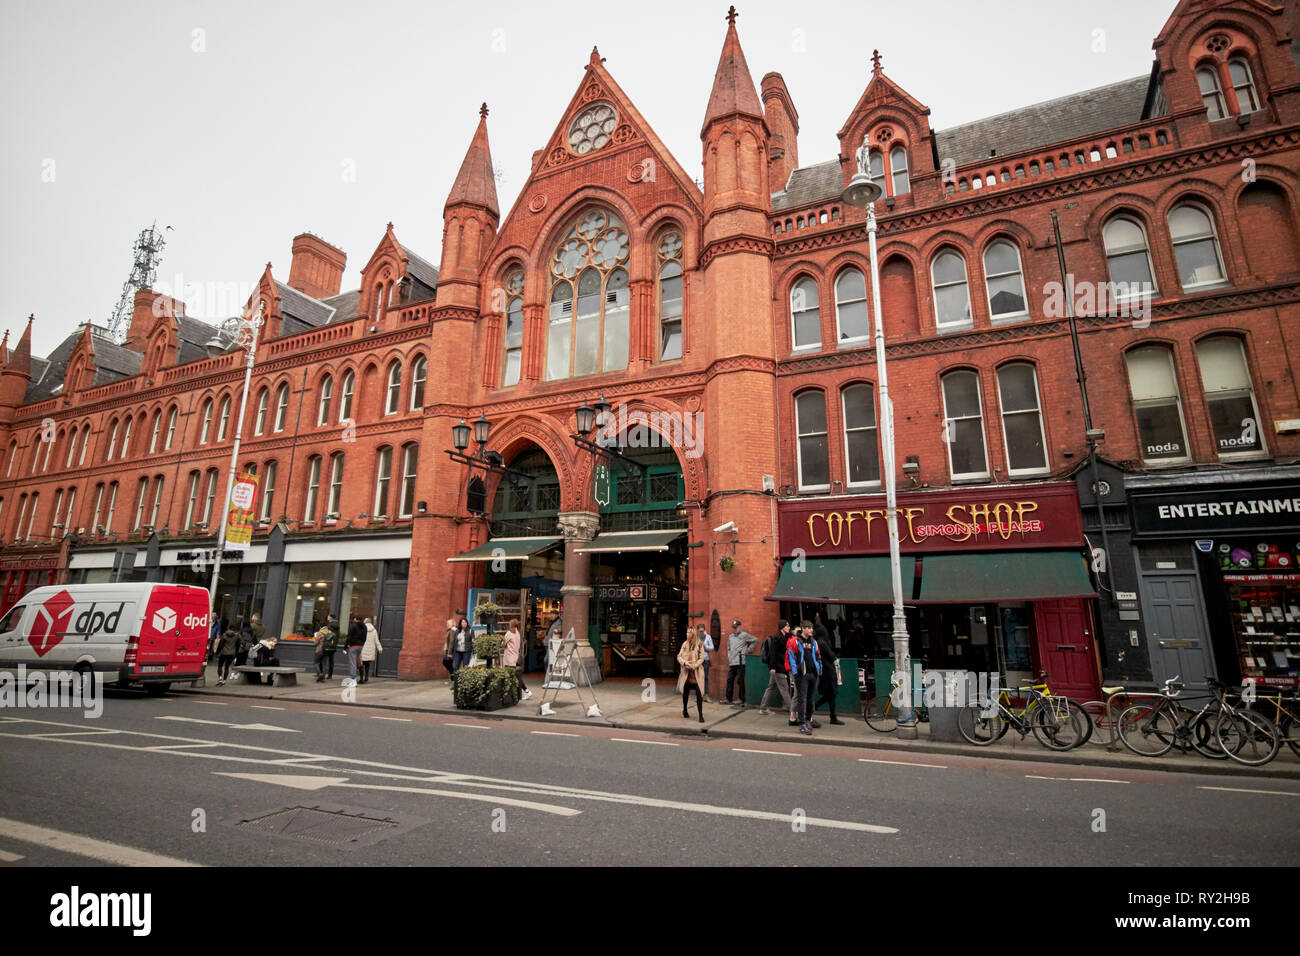 Georges street arcade on south great georges street in the cultural quarter of Dublin former south city markets Republic of Ireland Europe - Stock Image